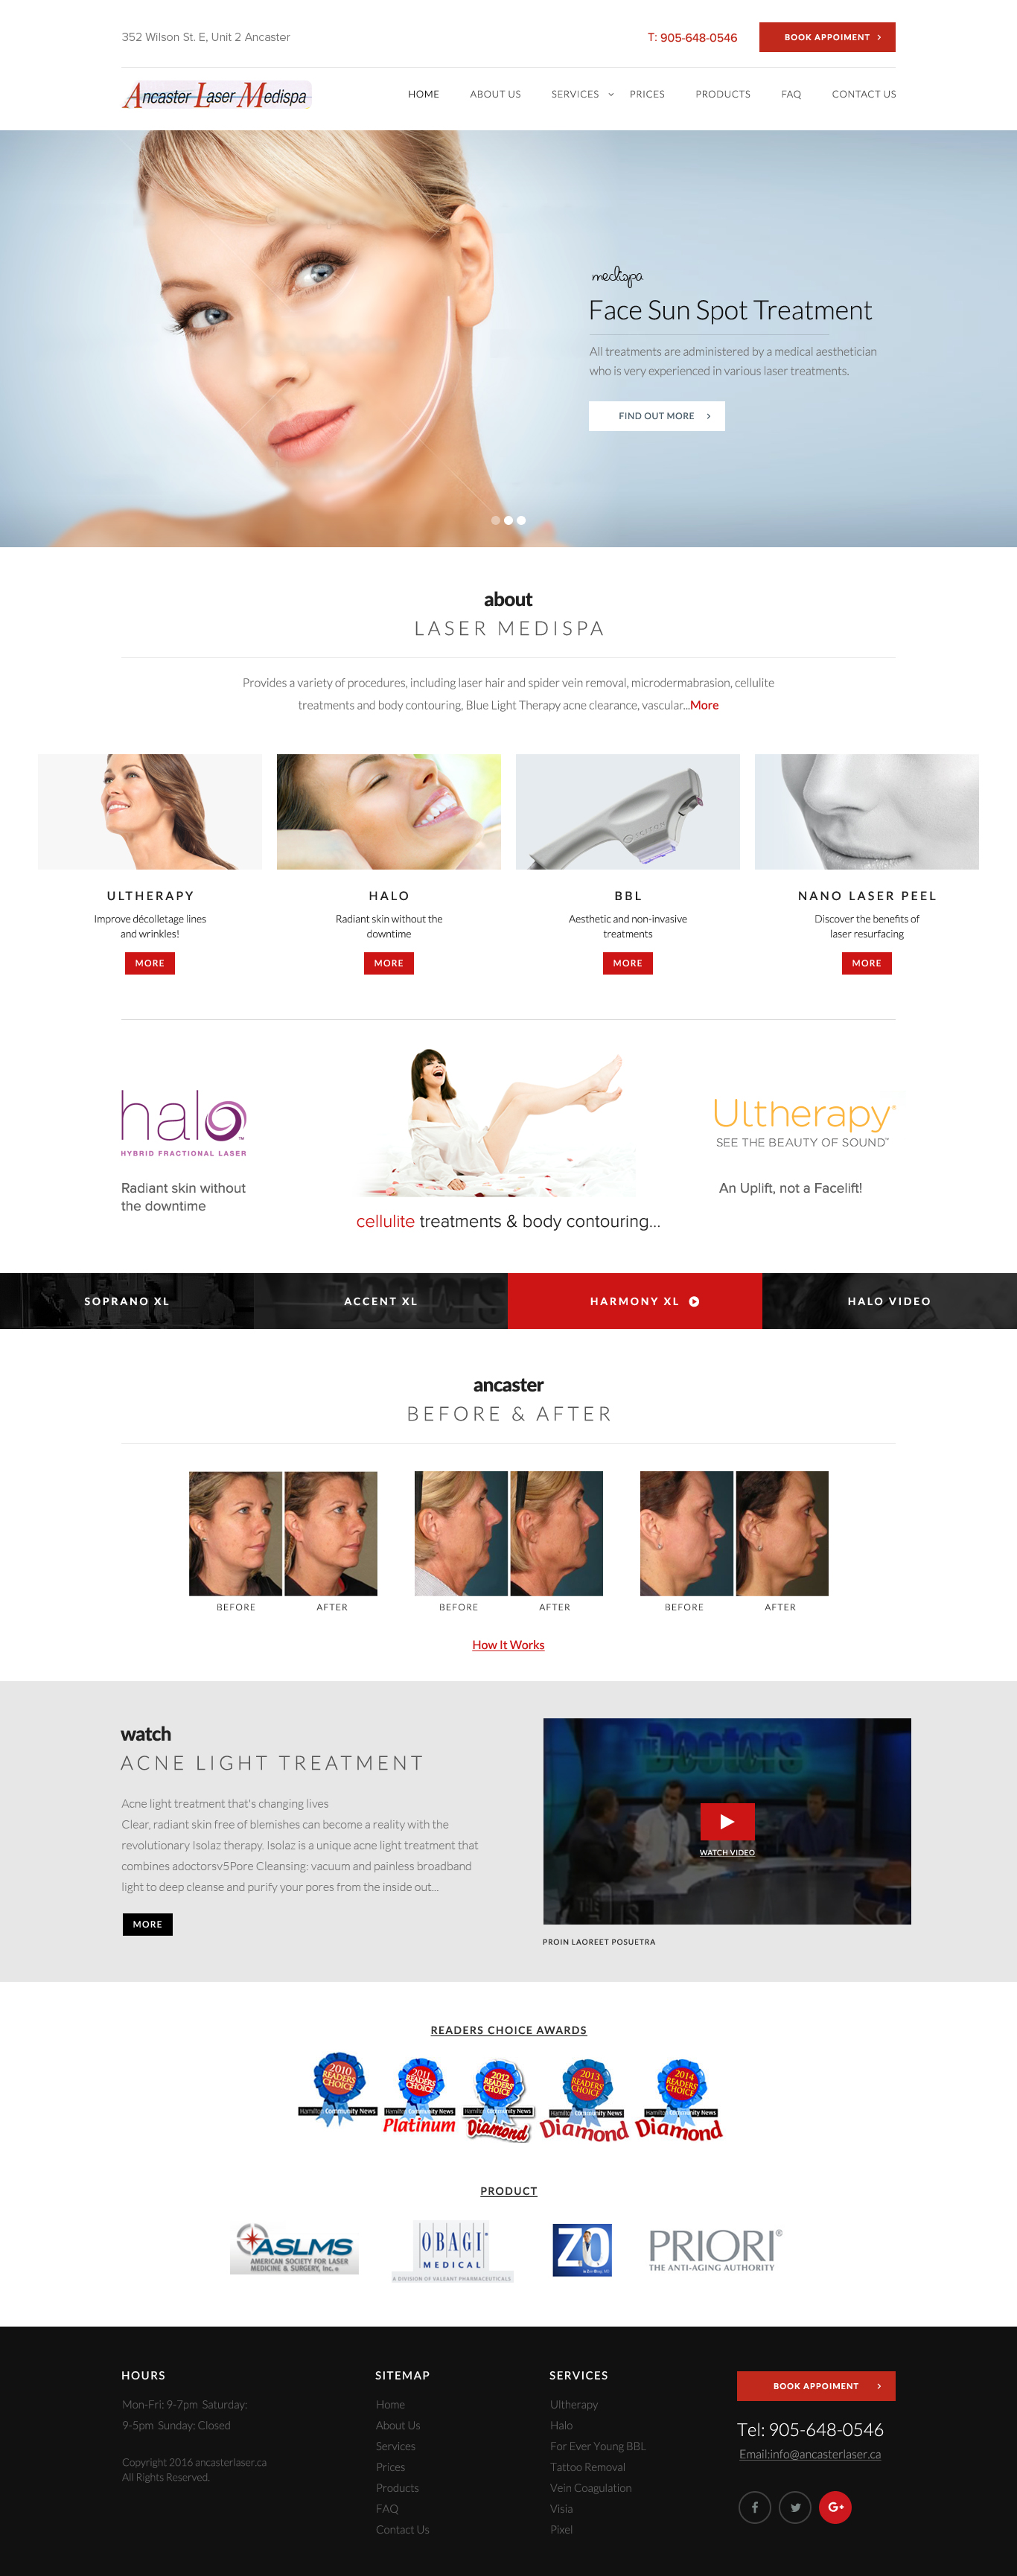 Autumnfire Launches New Website for Ancaster Laser Media Spa.